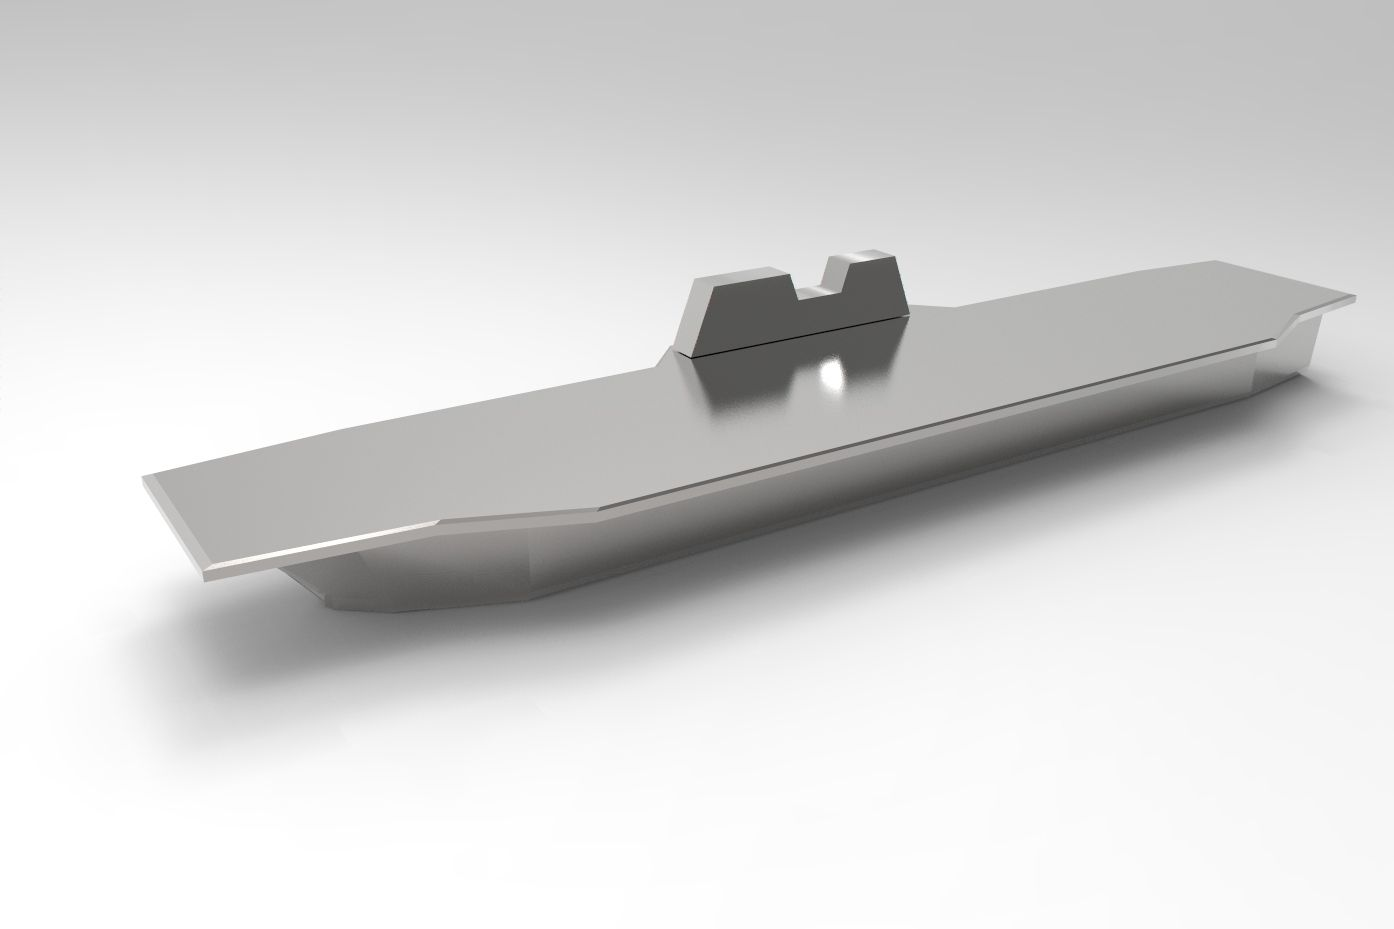 IZUMO class helicopter carrier ornament by 3ds Max and Keyshot